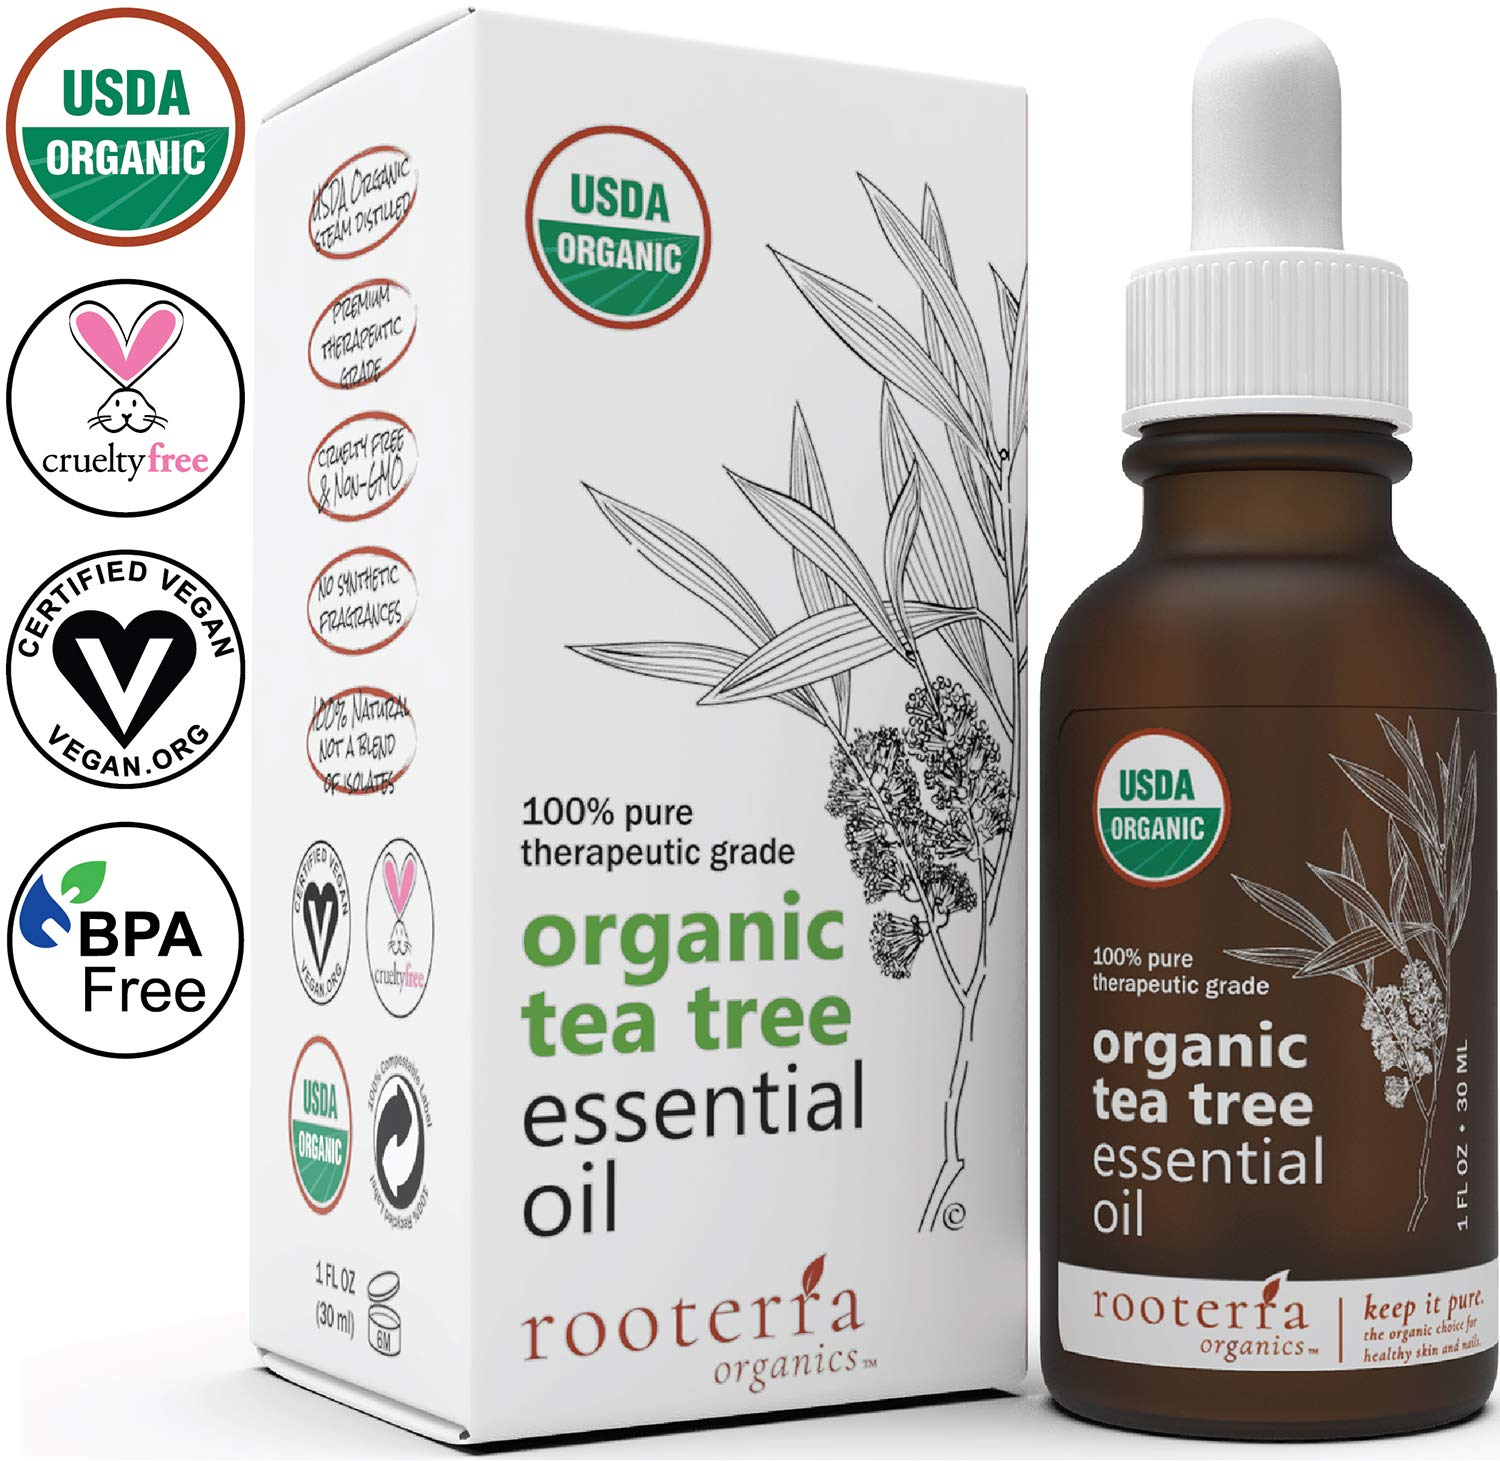 Rooterra Organics Tea Tree Essential Oil | 100% USDA Organic Premium Therapeutic Grade | 100% Pure & Natural | Best Antifungal, Acne & Lice Remedy | Hair, Nail, Skin Health | Cert Vegan | 1 OZ - 30ml by Rooterra Organics